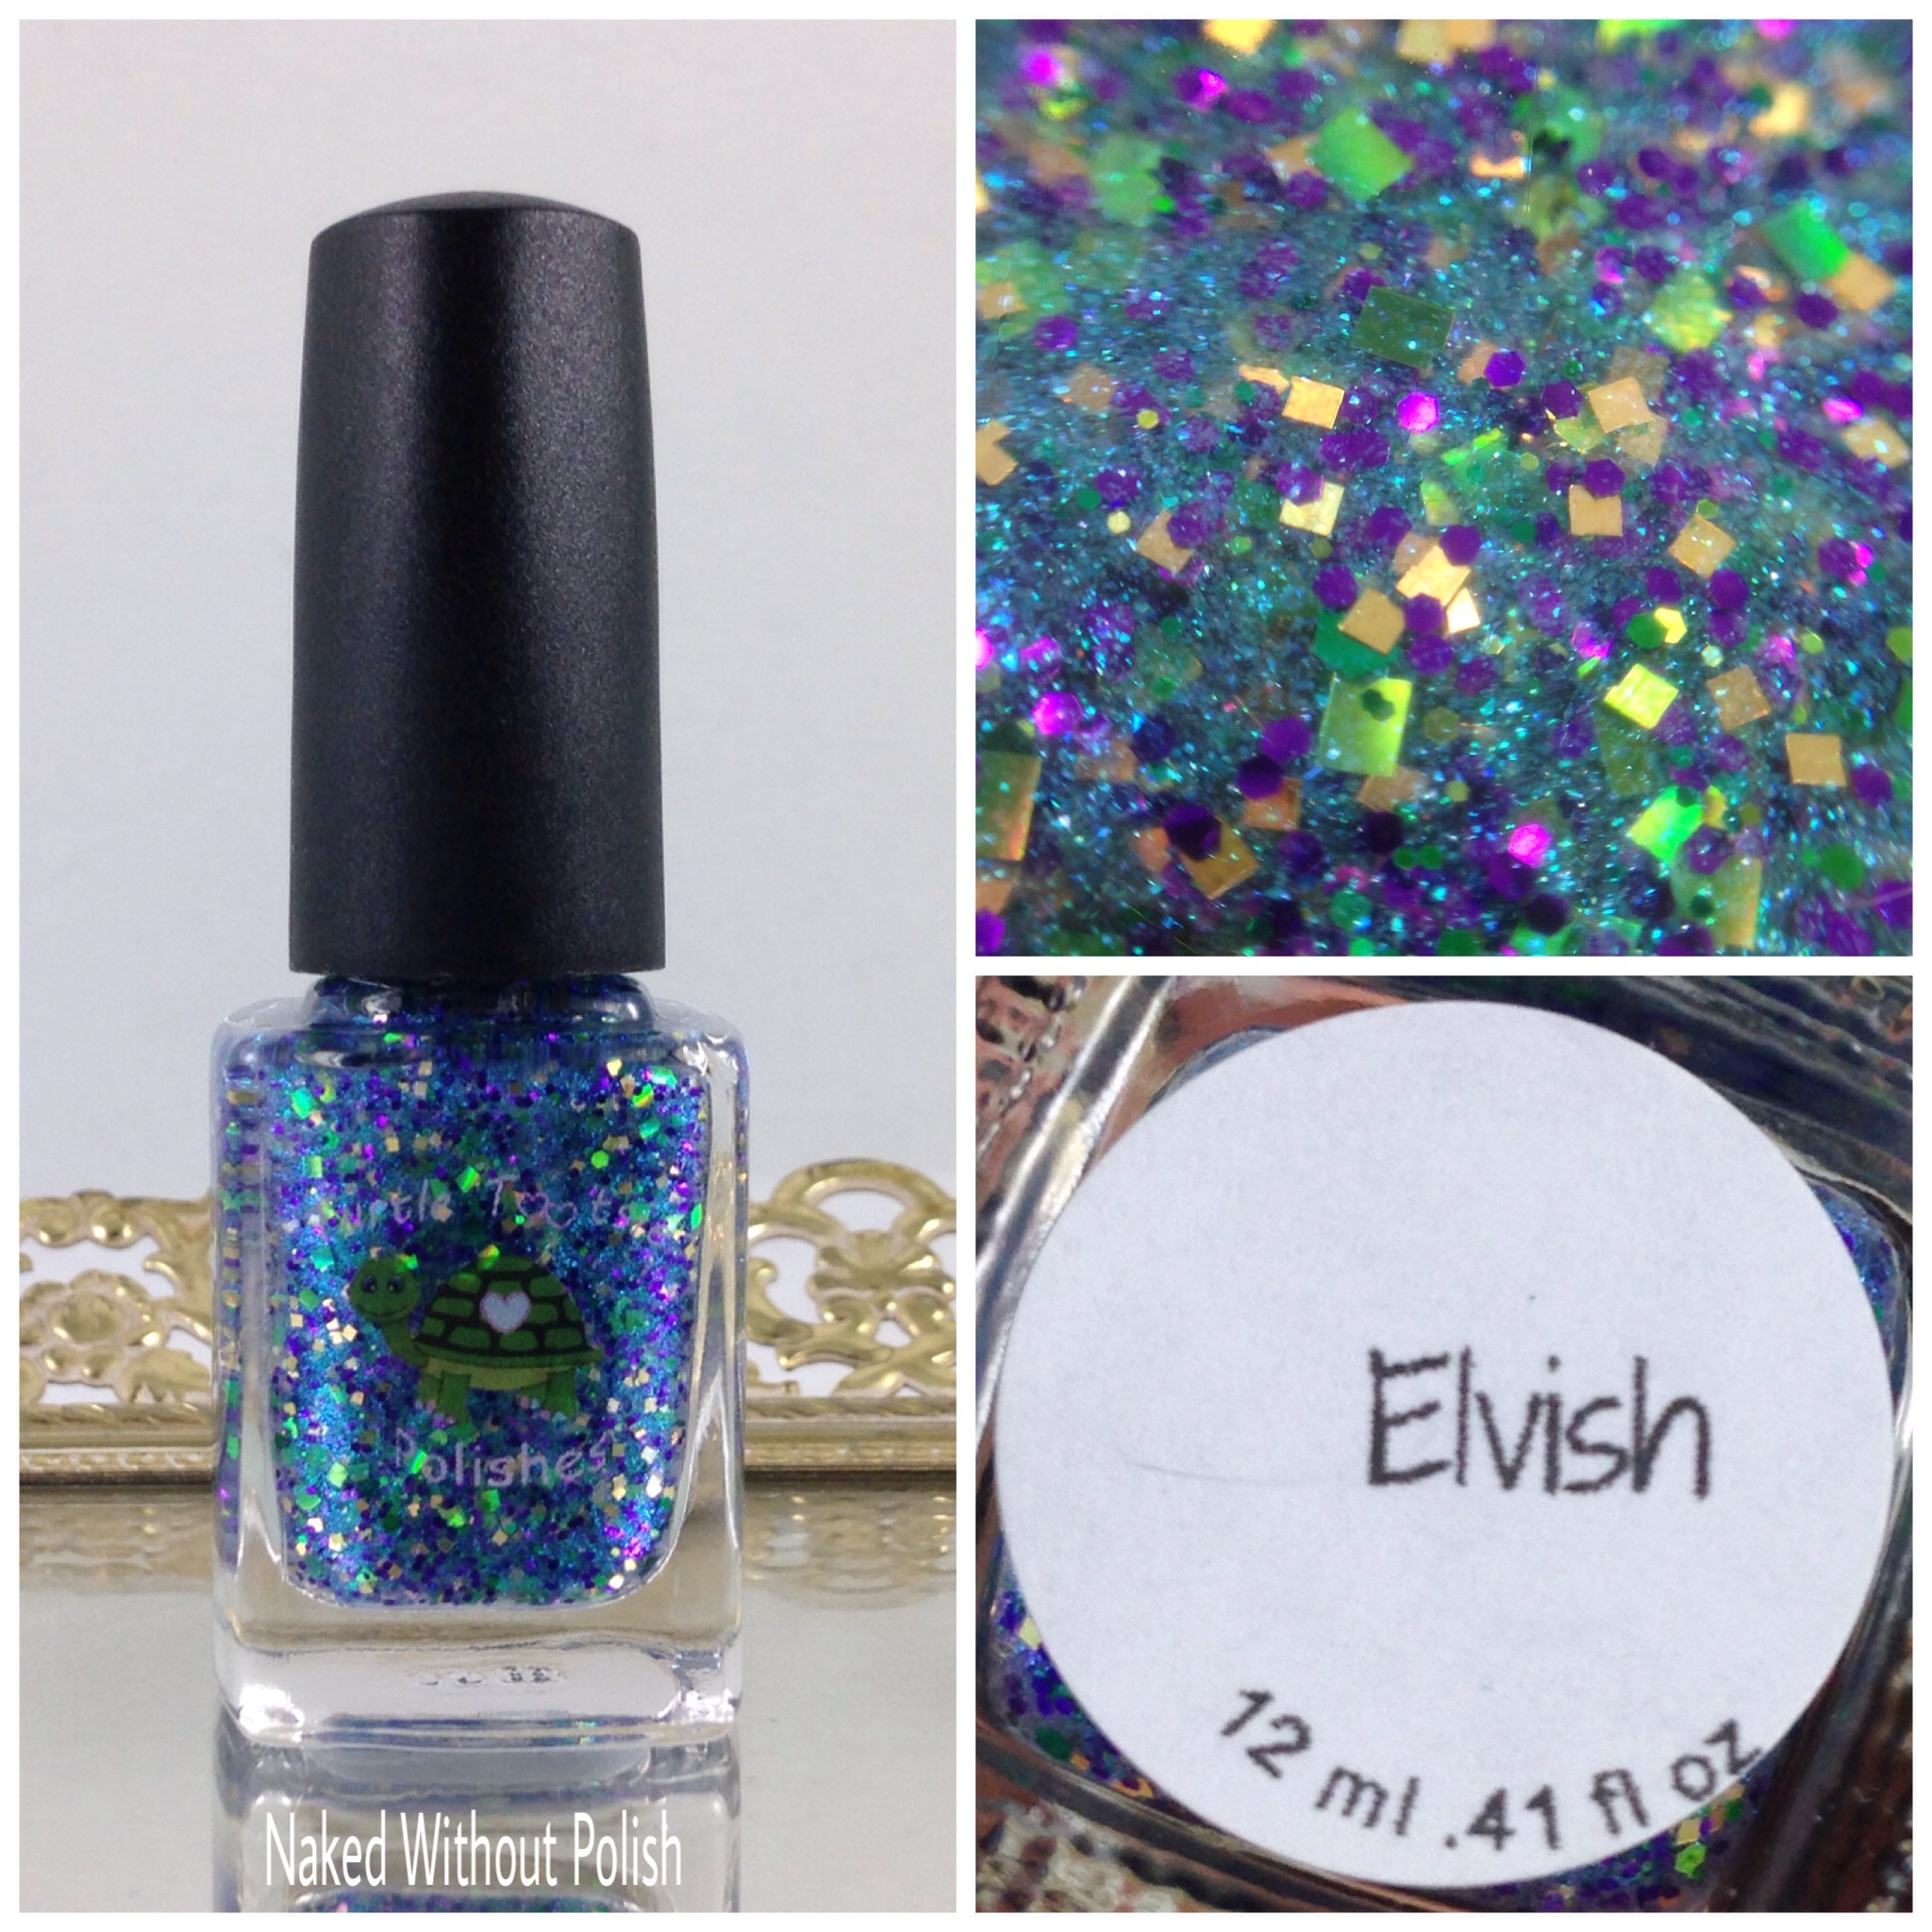 Turtle-Tootsie-Polishes-Elvish-1